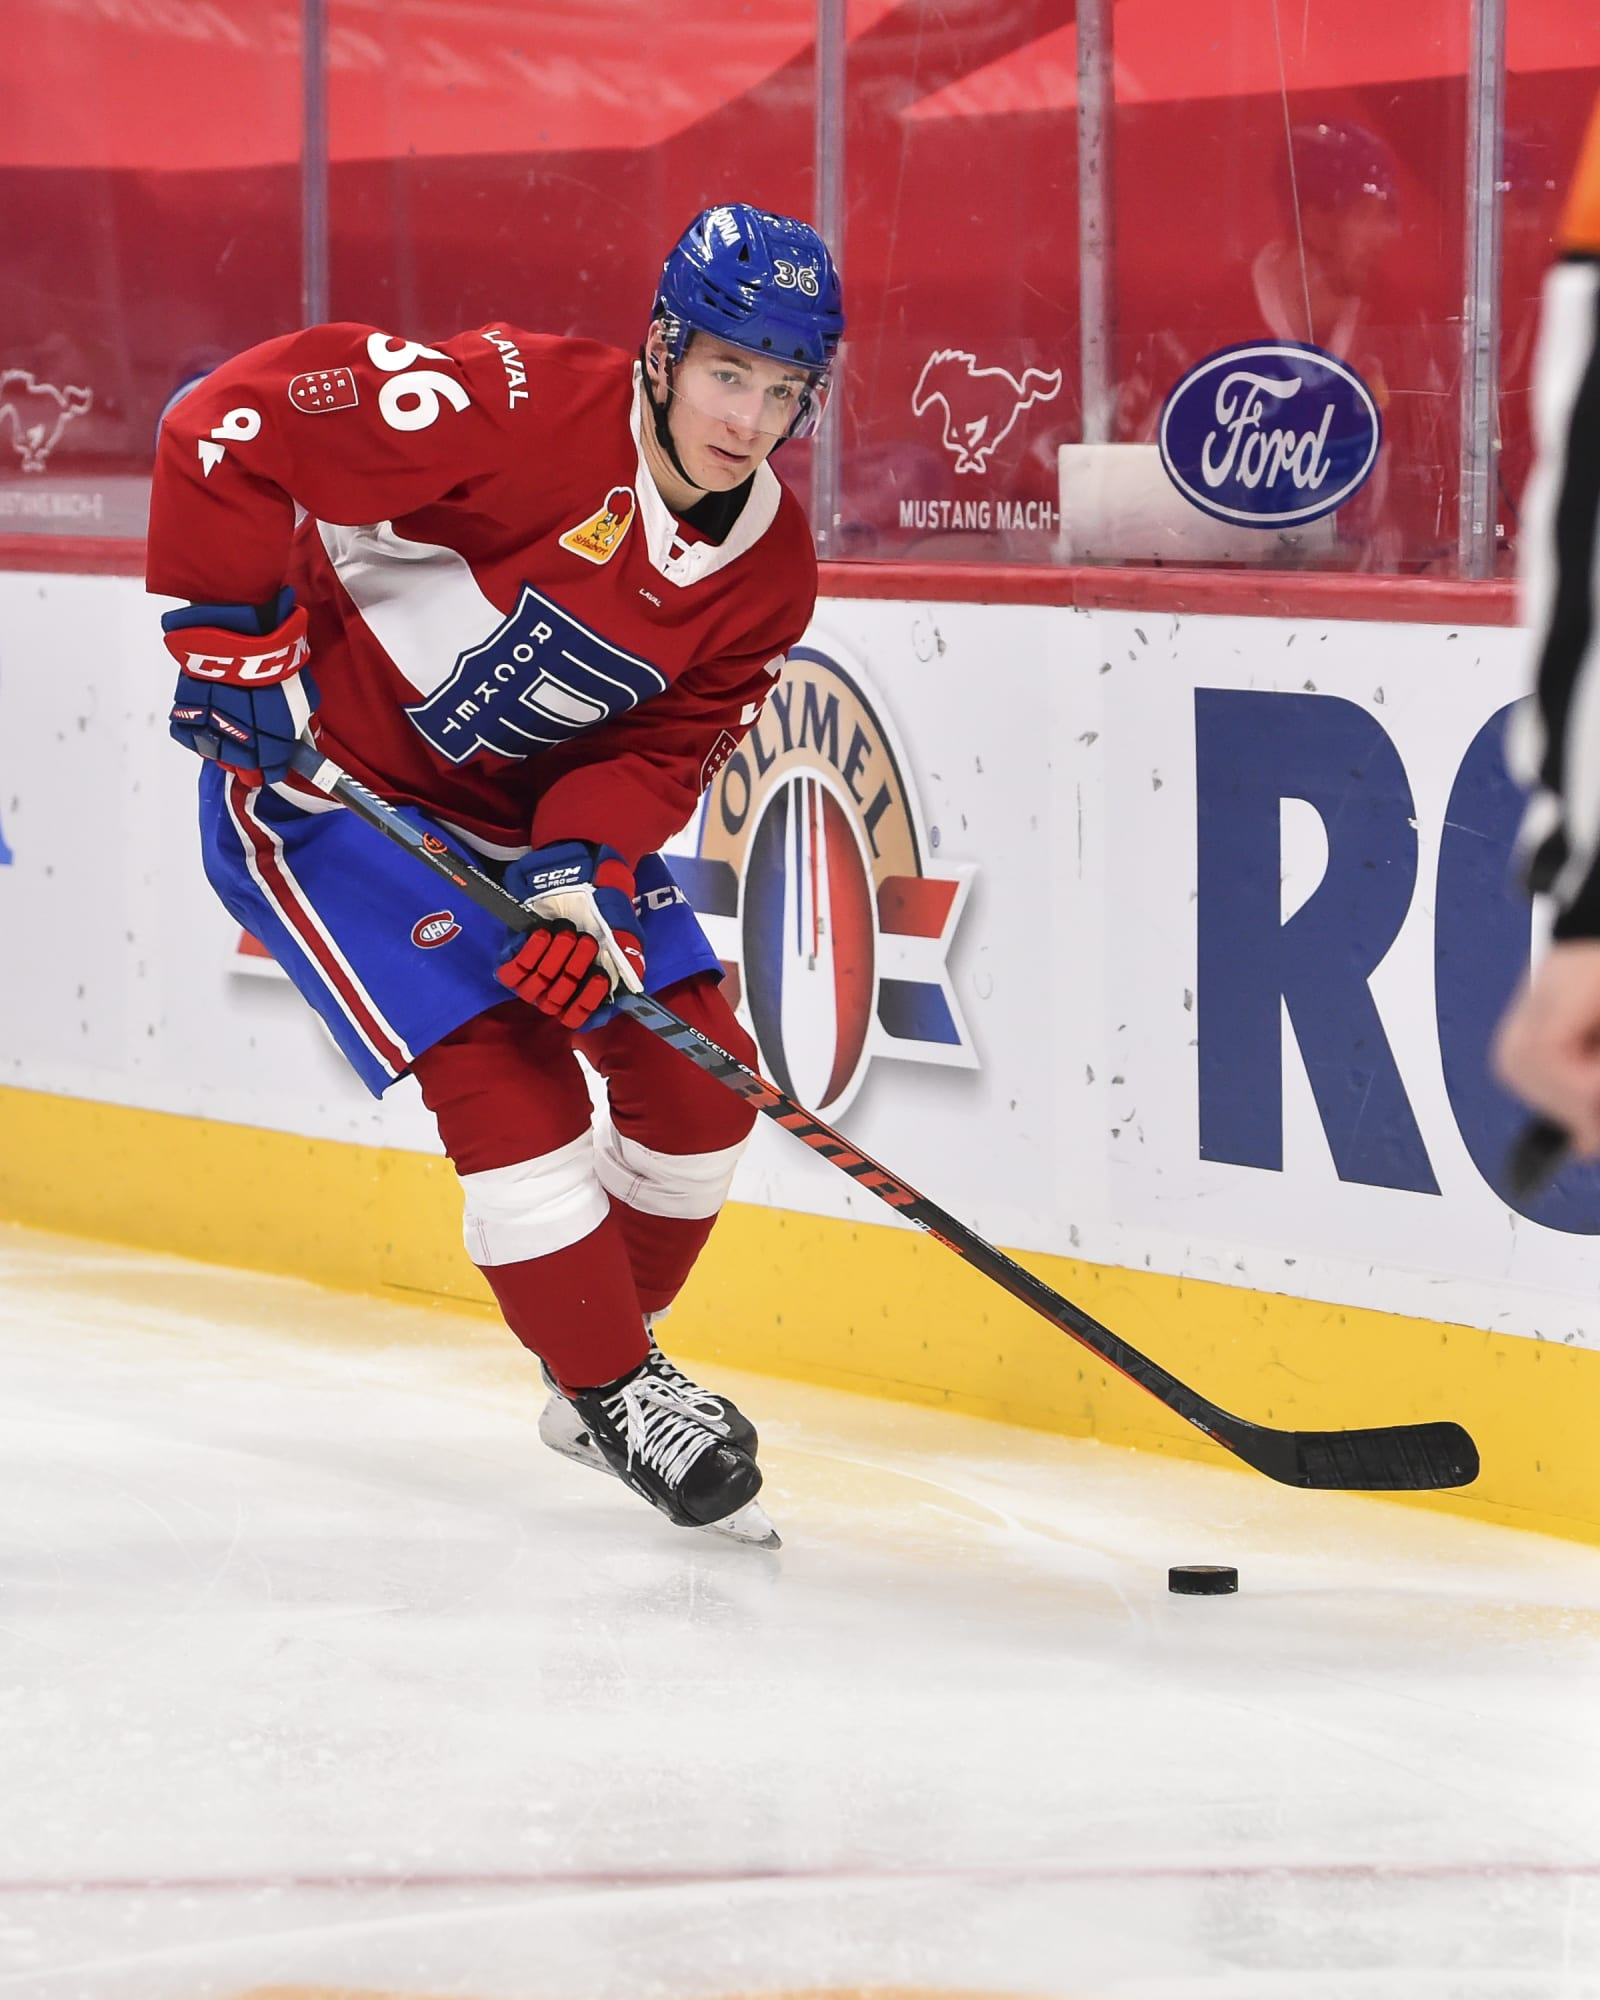 Montreal Canadiens: Watch Gianni Fairbrother Score First Pro Goal